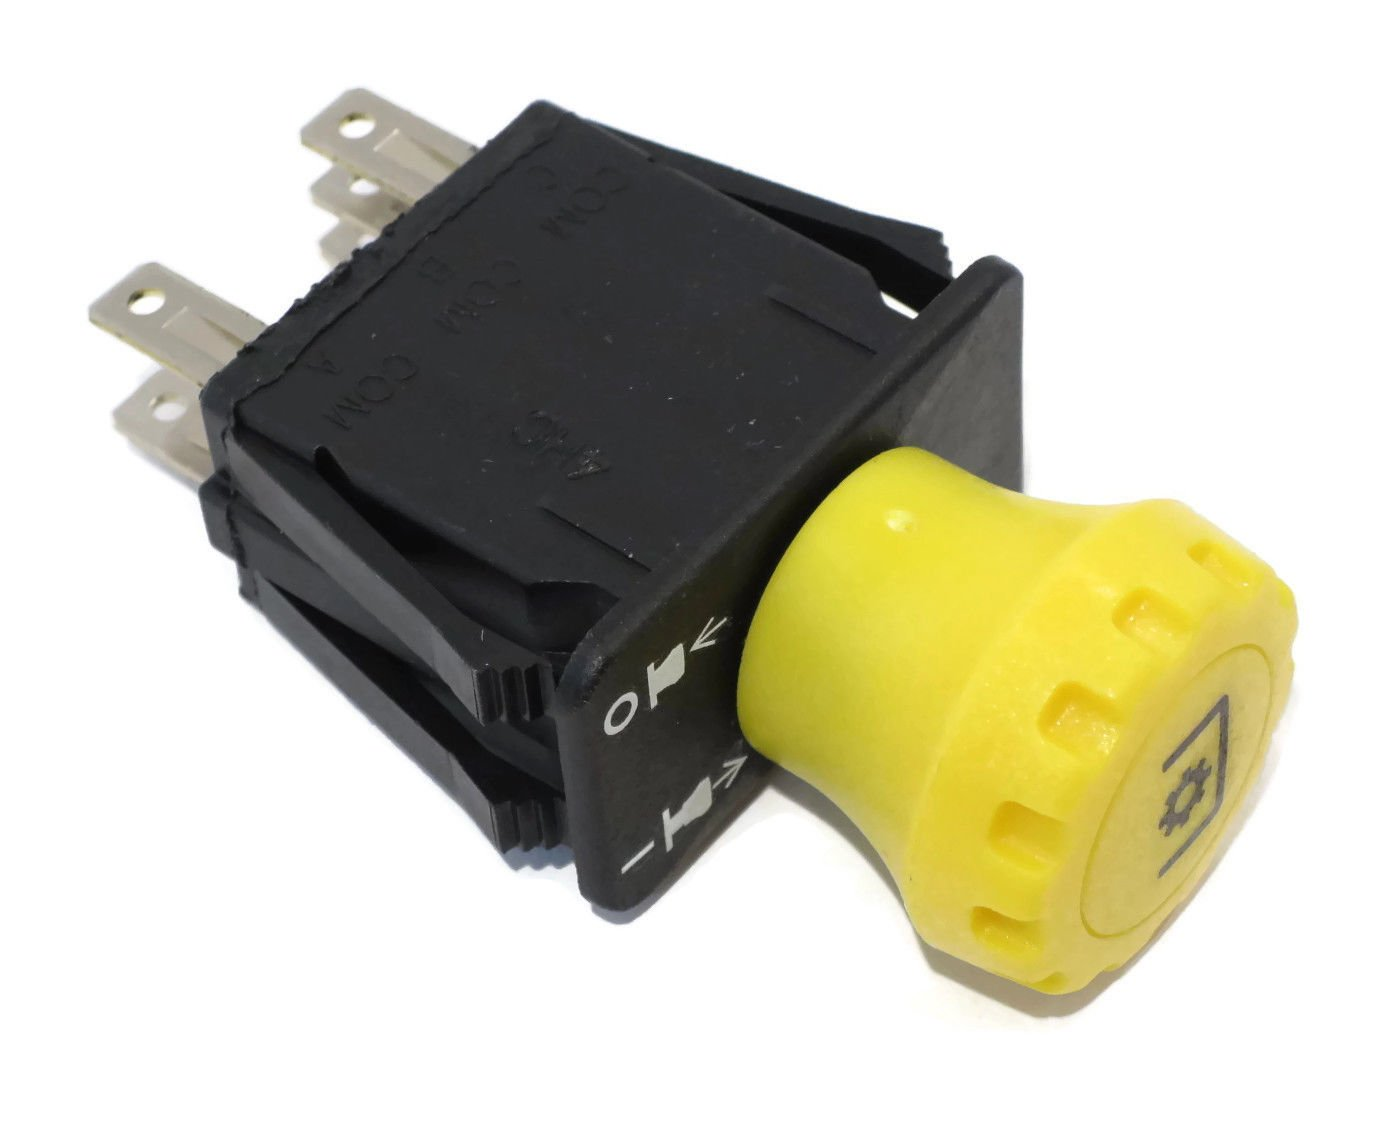 New PTO SWITCH for Great Dane AM118802 / DELTA 6201-01 Power Take Off Clutch ,,#id(theropshop; TRYK20270666823185